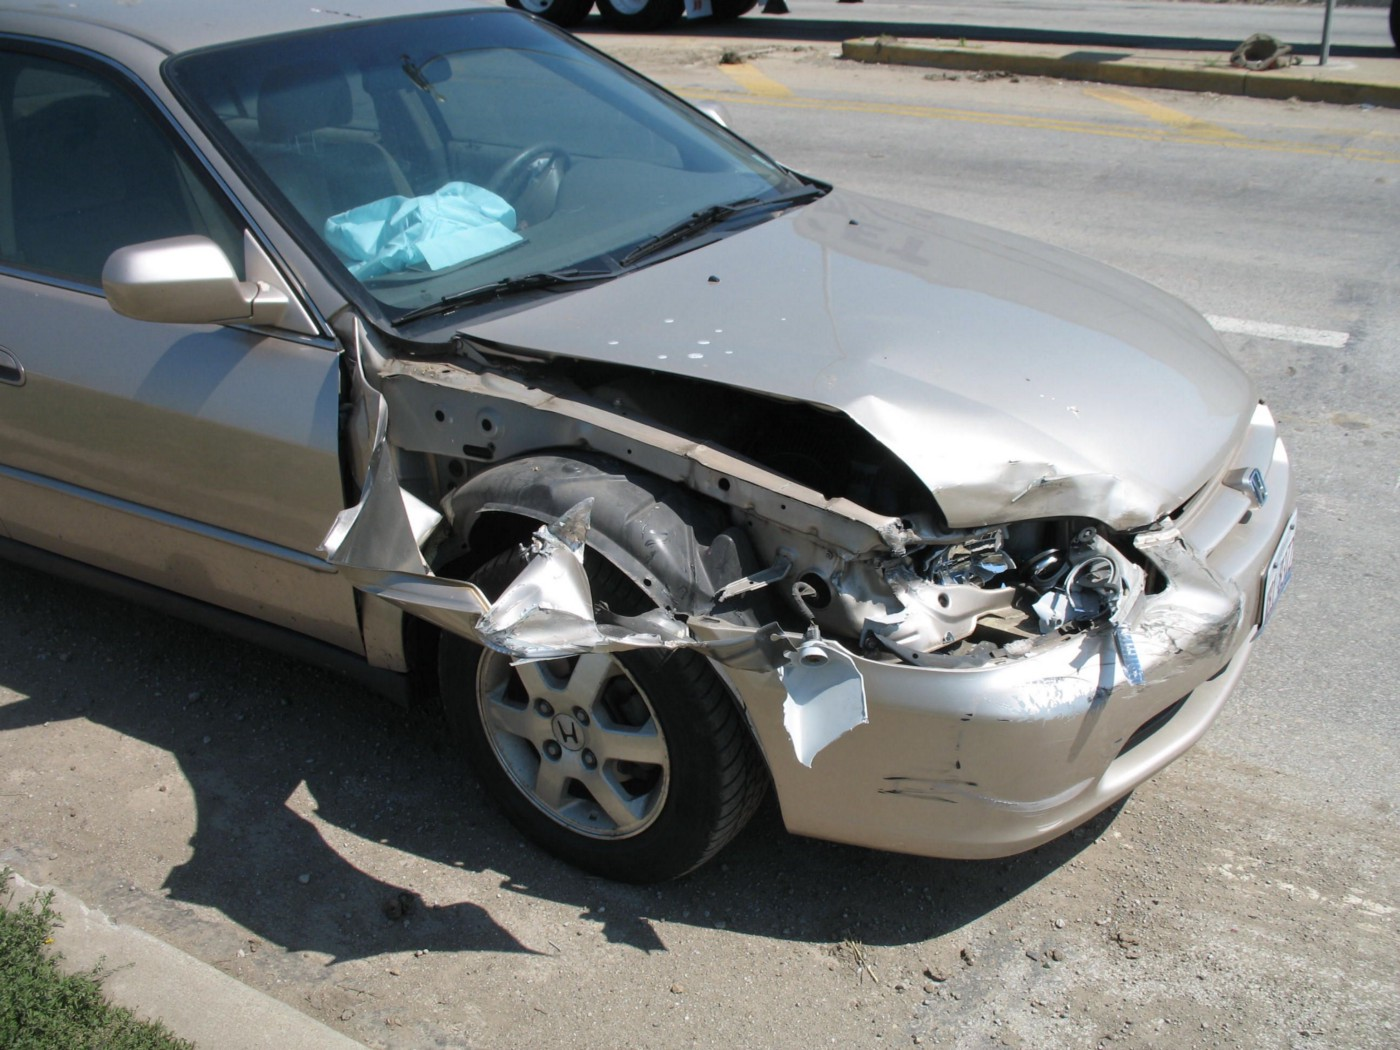 A smashed up, post-accident silver Honda Accord, airbags deployed.